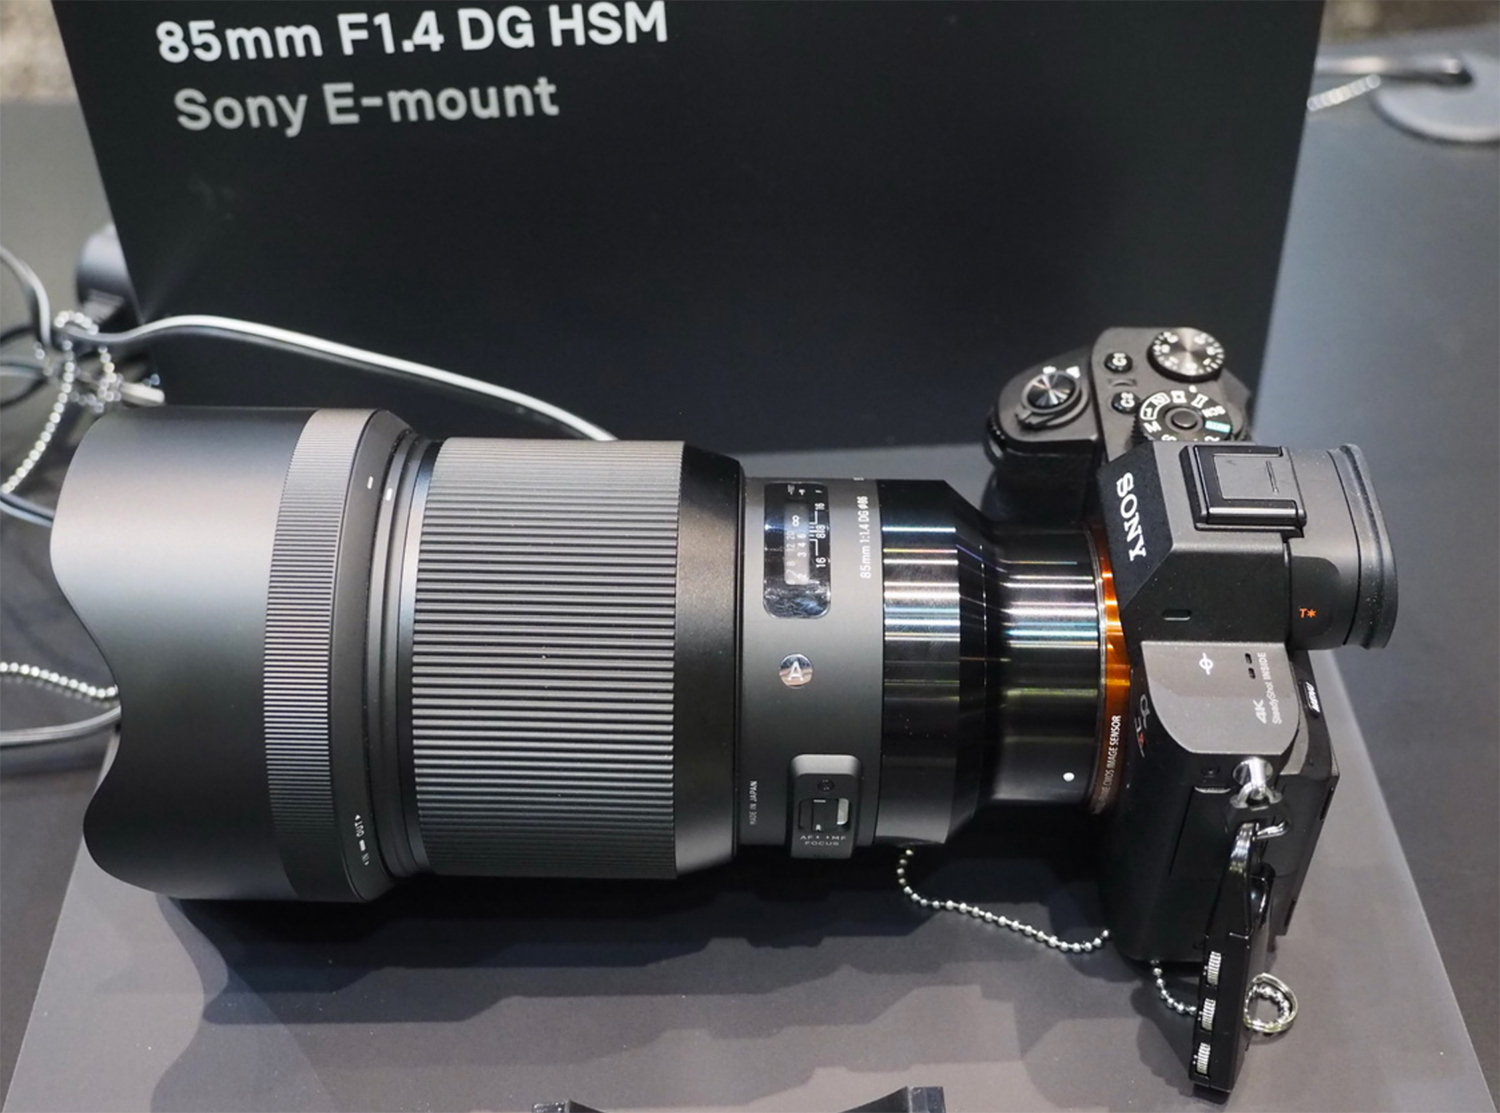 First real world images of the new Sigma E-mount lenses mounted on